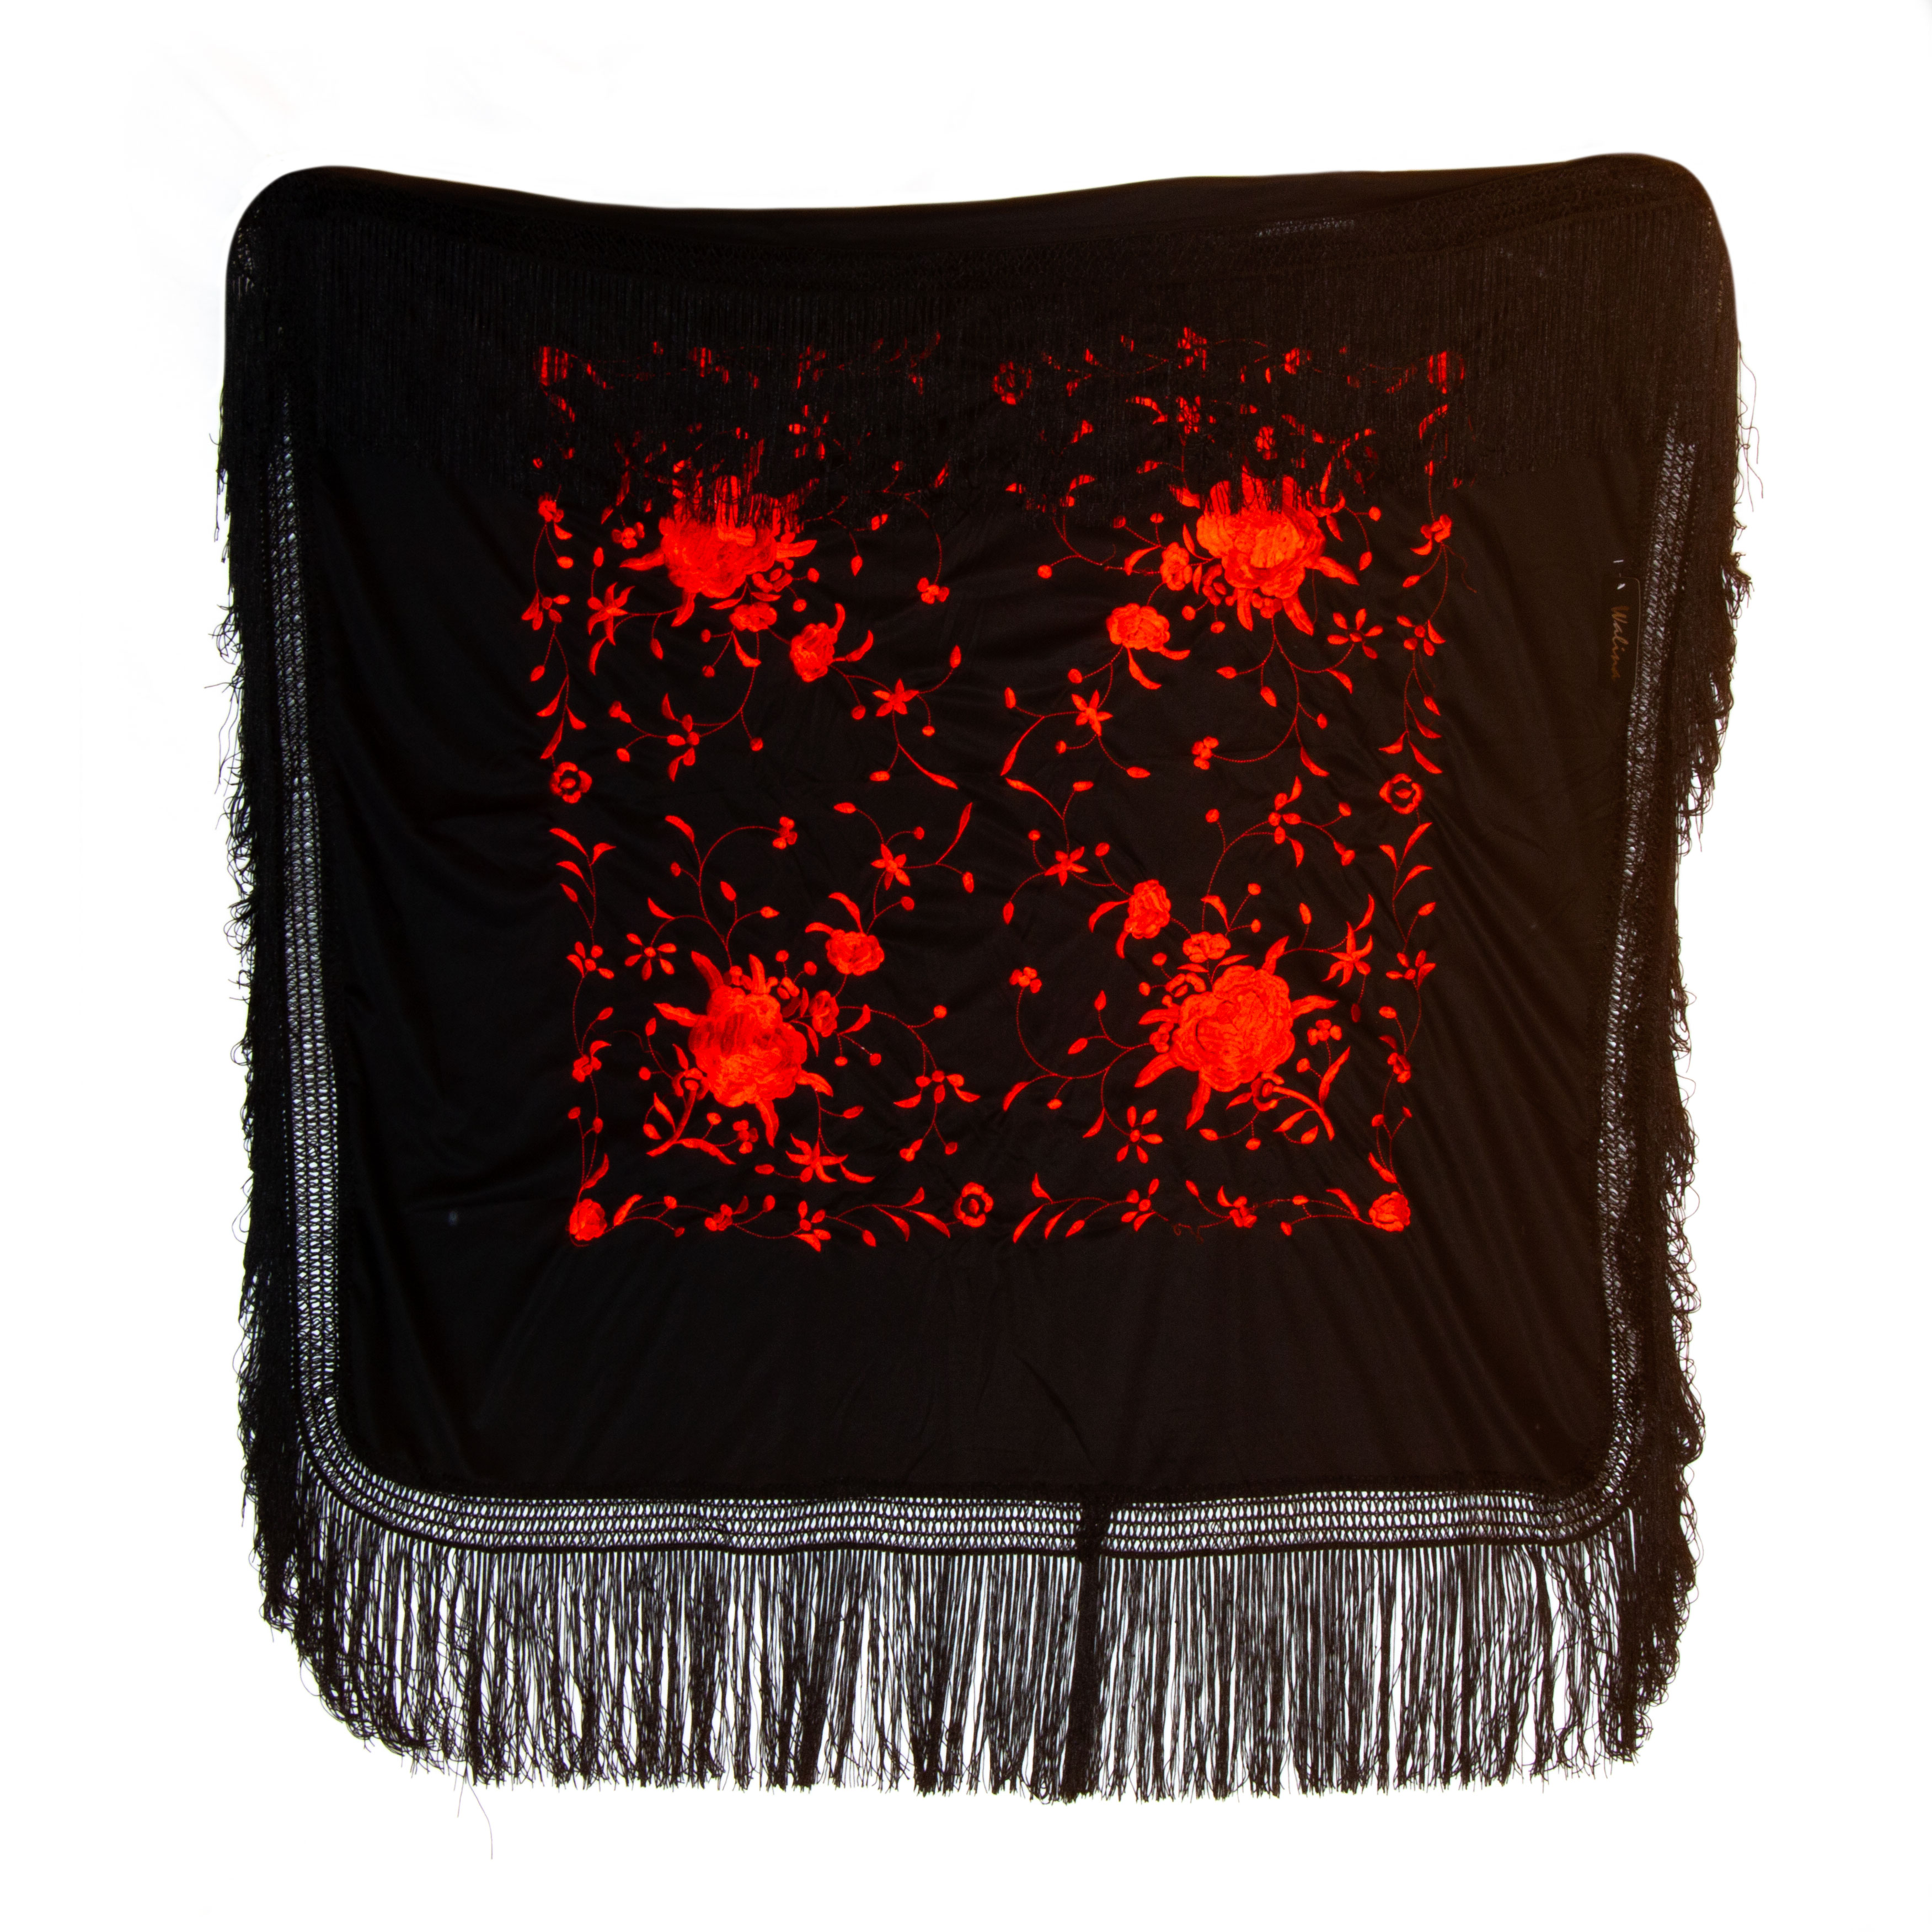 Silk shawl 120cm x 120cm black with red handmade embroideries